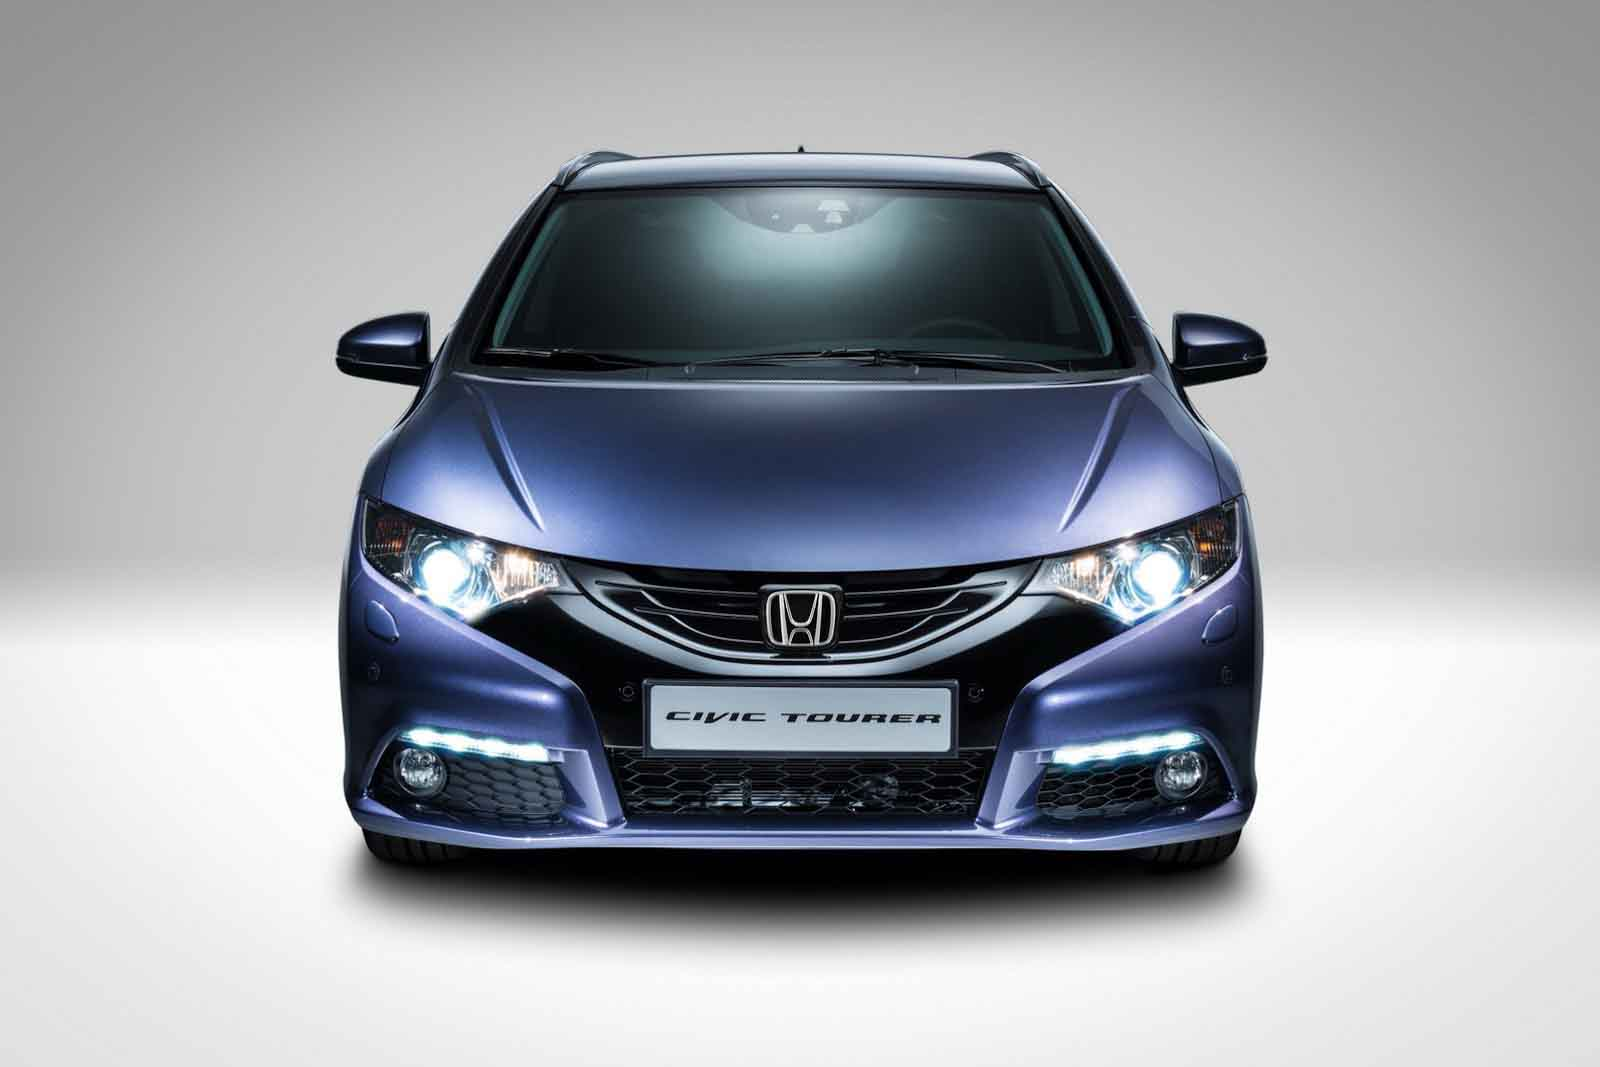 2014-Honda-Civic-Tourer-4[2]